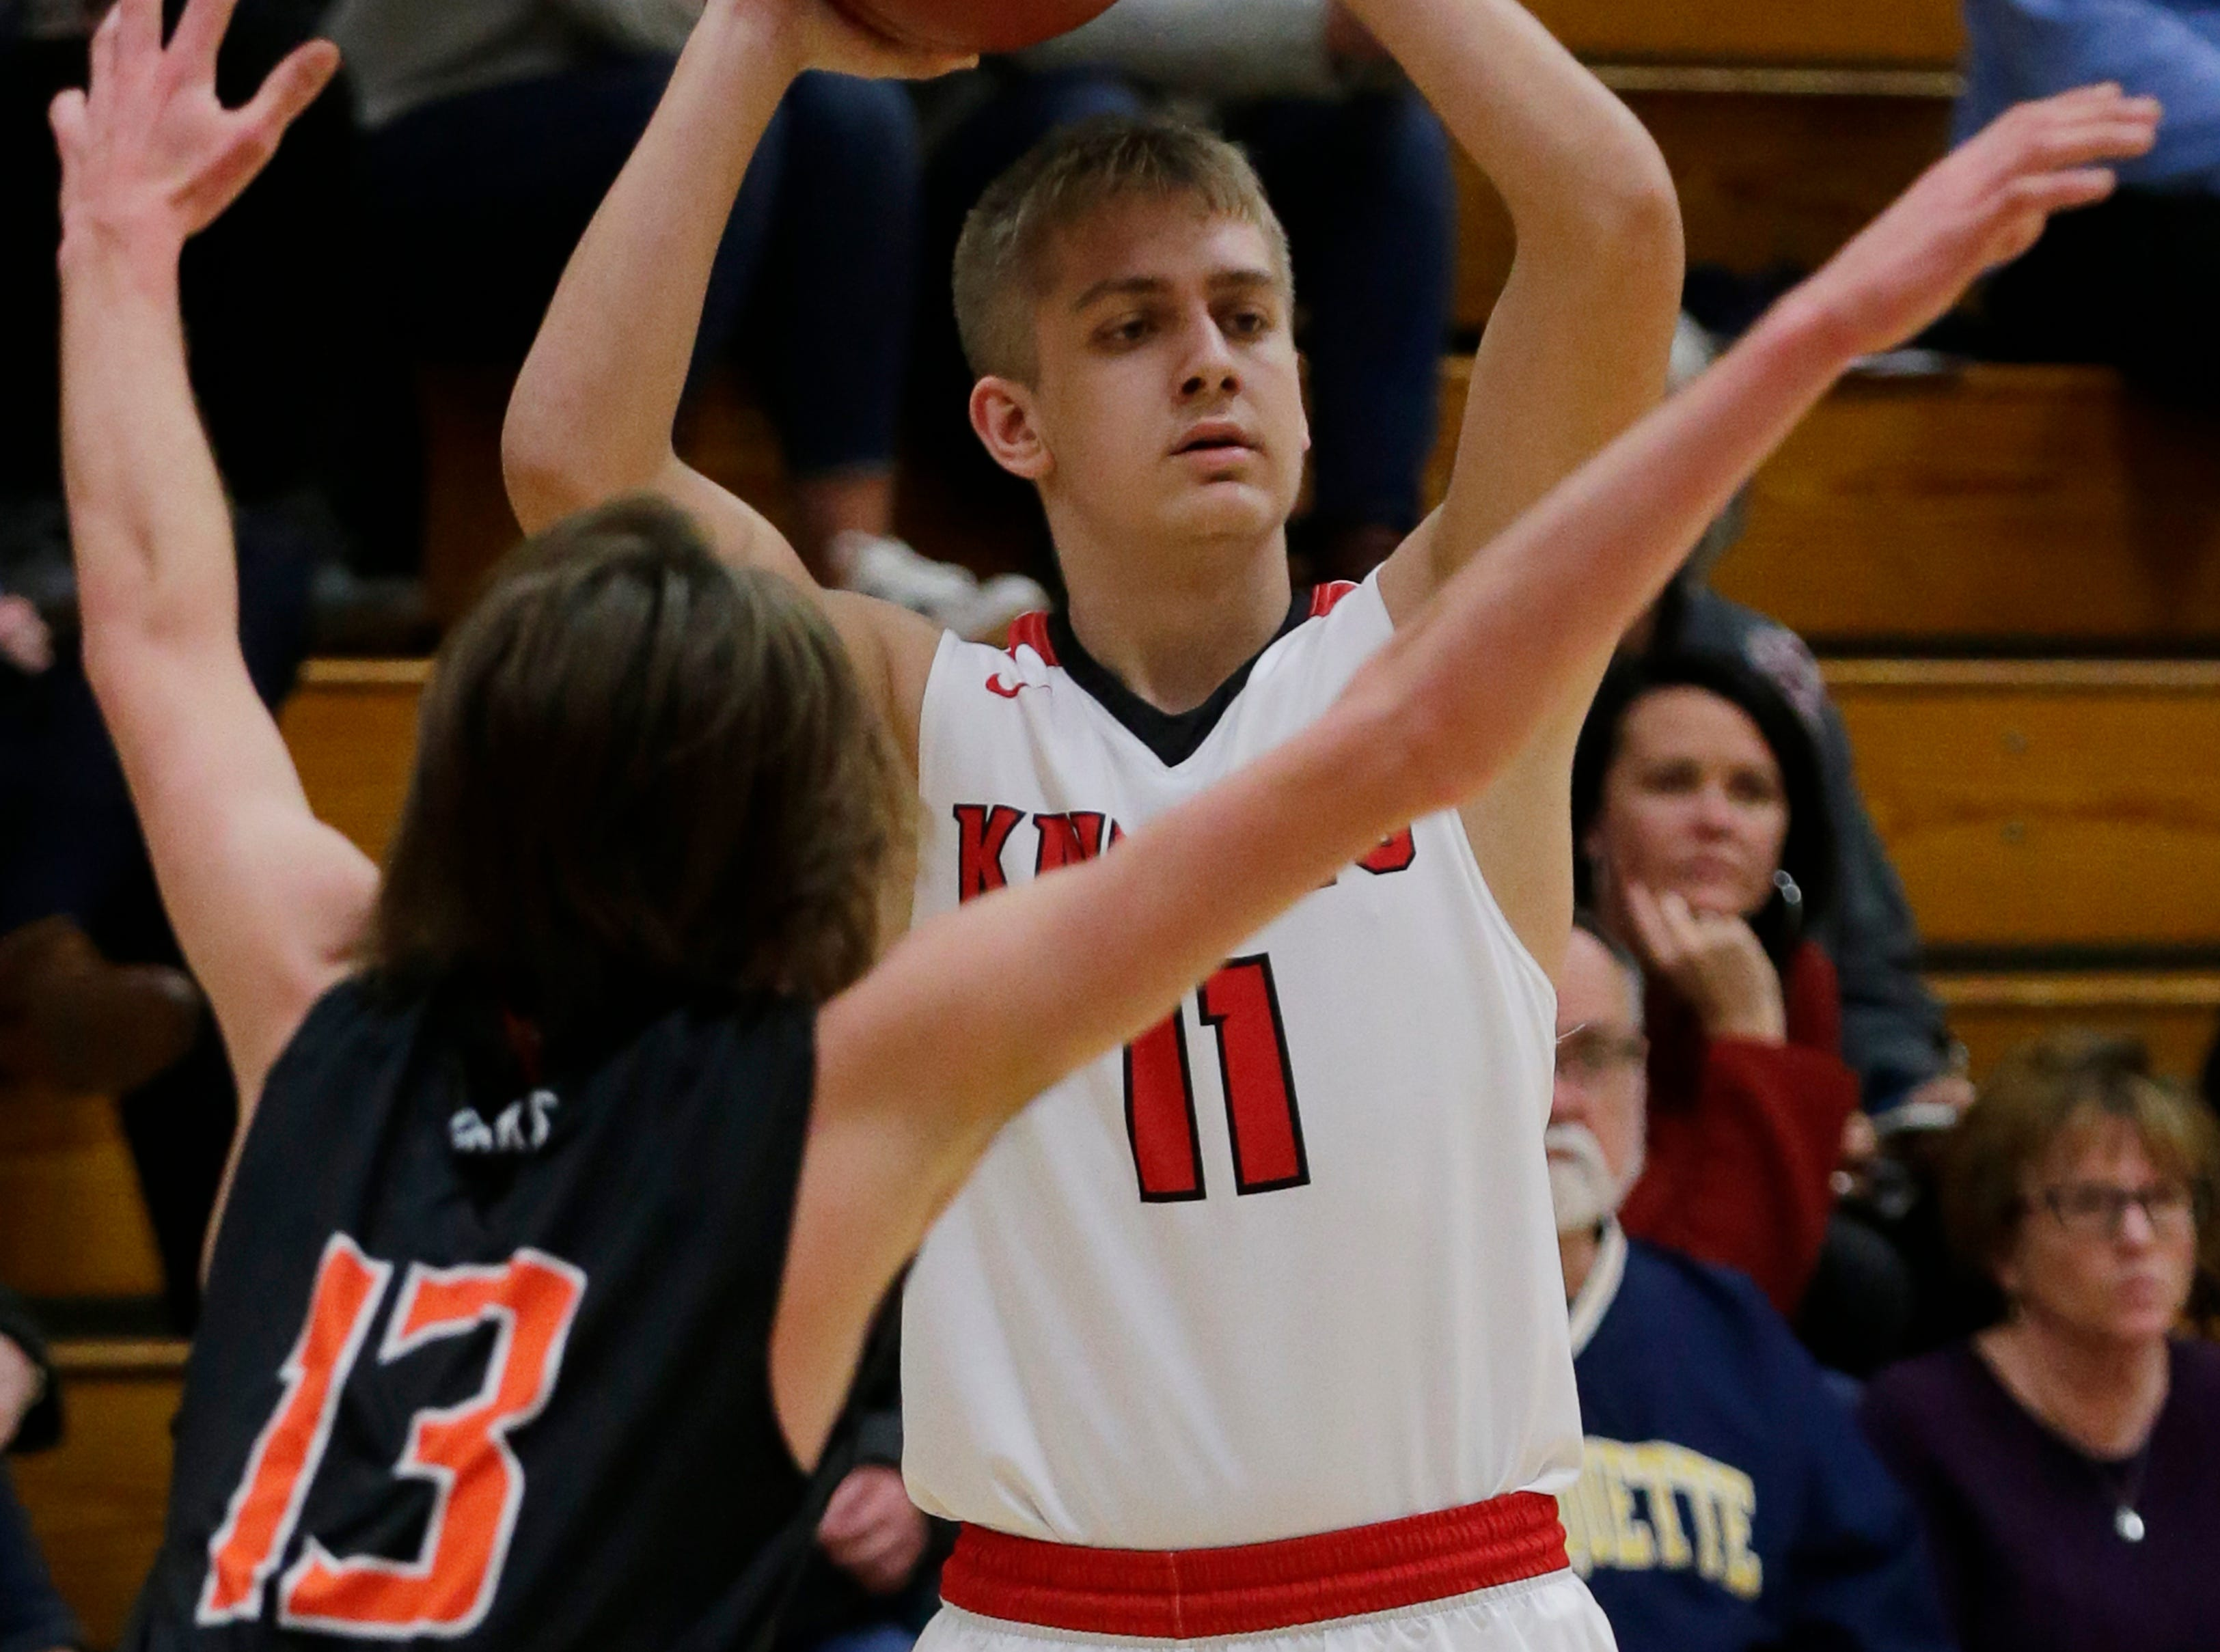 Lourdes Academy's Tyler Johnson looks to pass during the game.  Lourdes Academy Knights played Oakfield Oaks in boys basketball Tuesday, Dec. 4, 2018, at Lourdes Castle in Oshkosh, Wis.